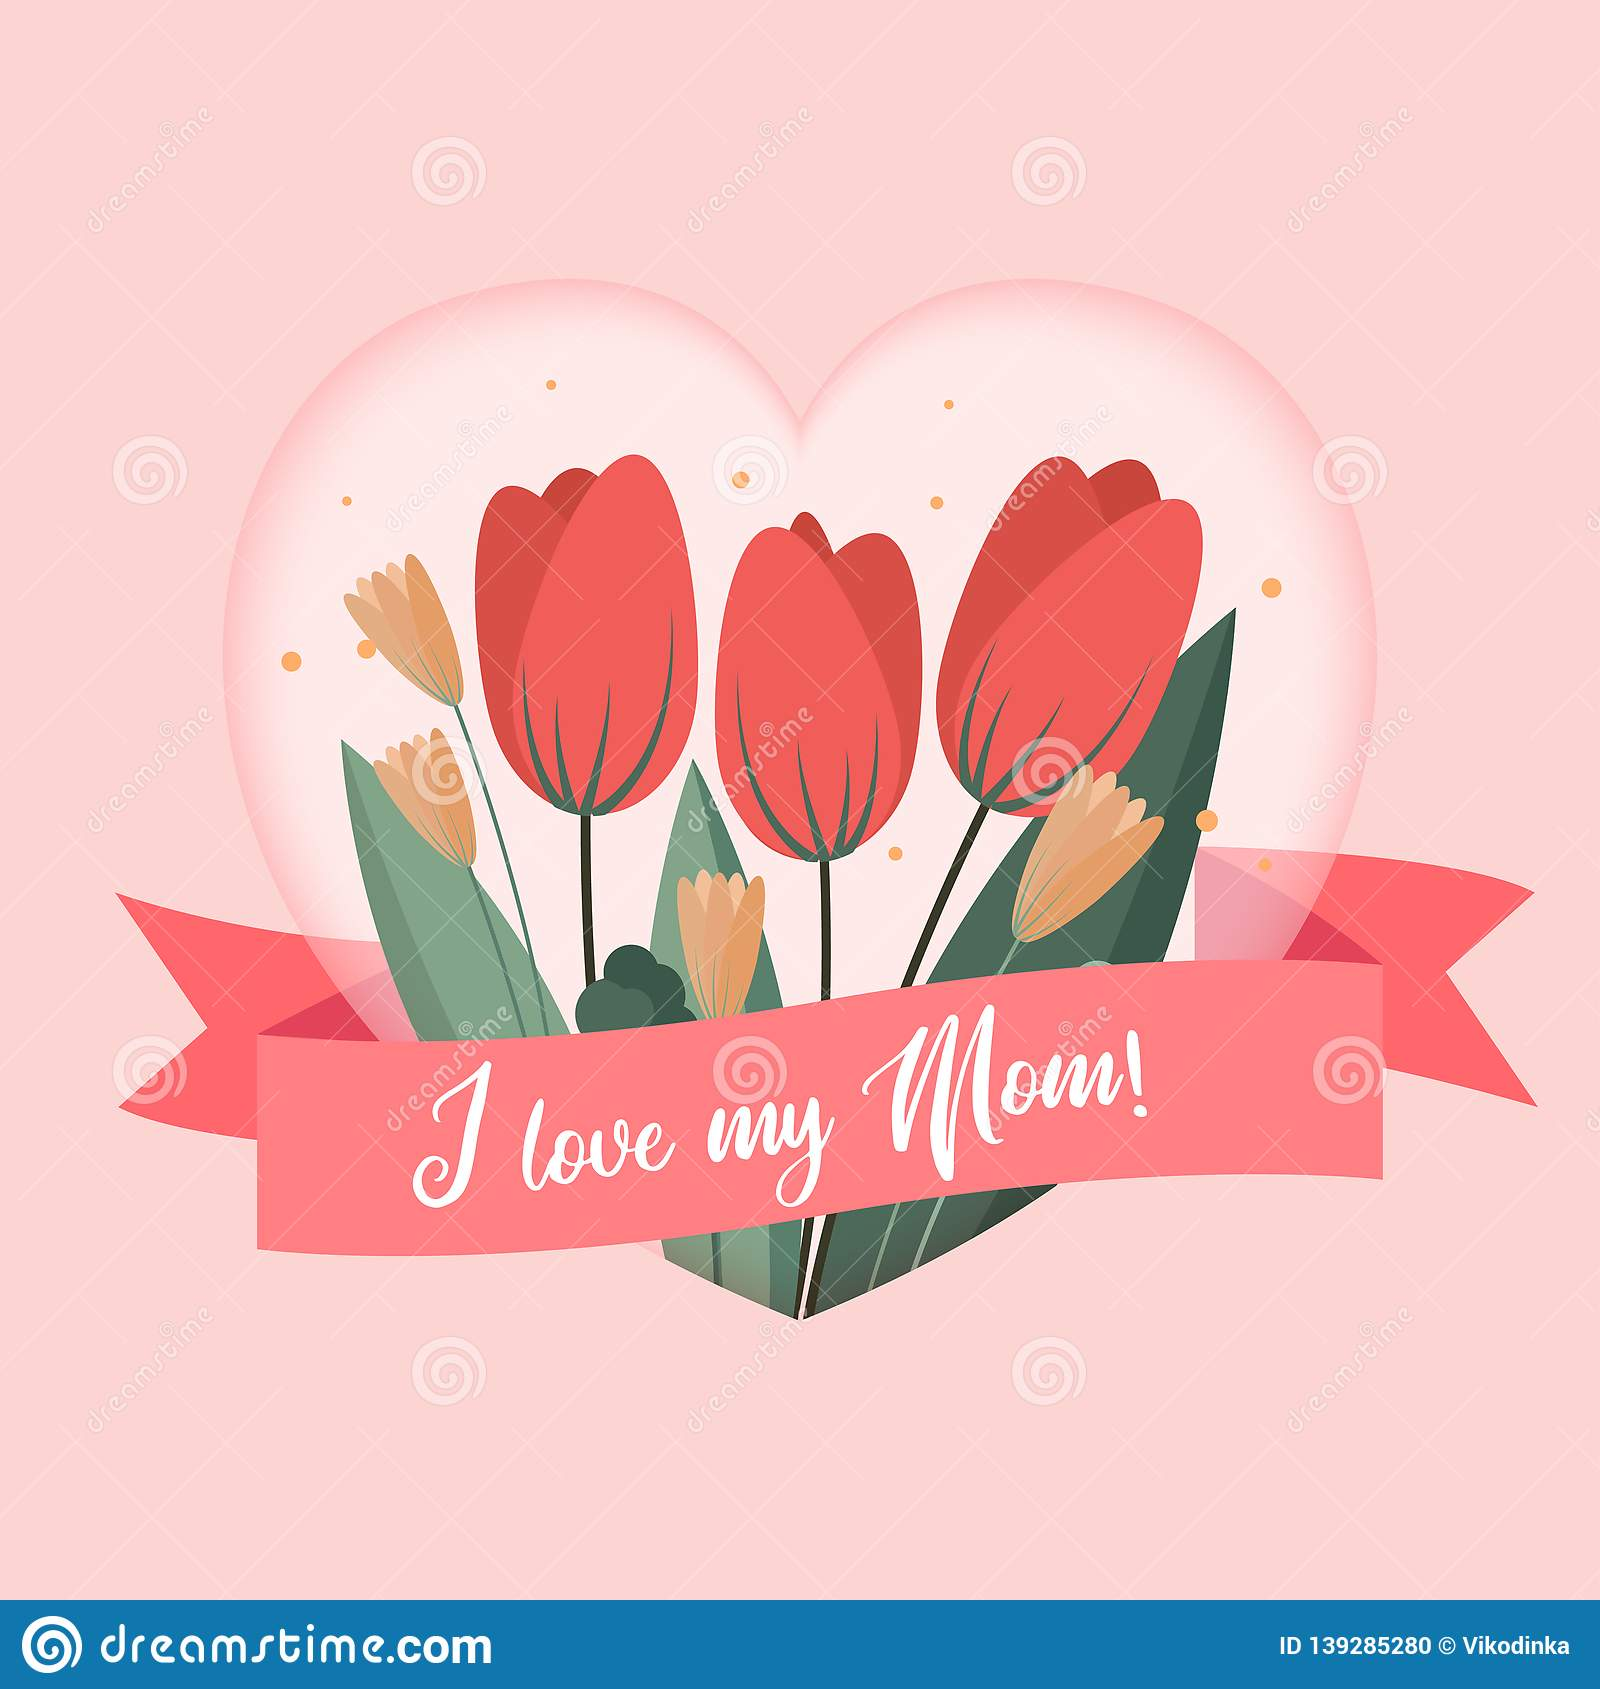 I Love My Mom Greetings Card Template Background Design To Mothers Day